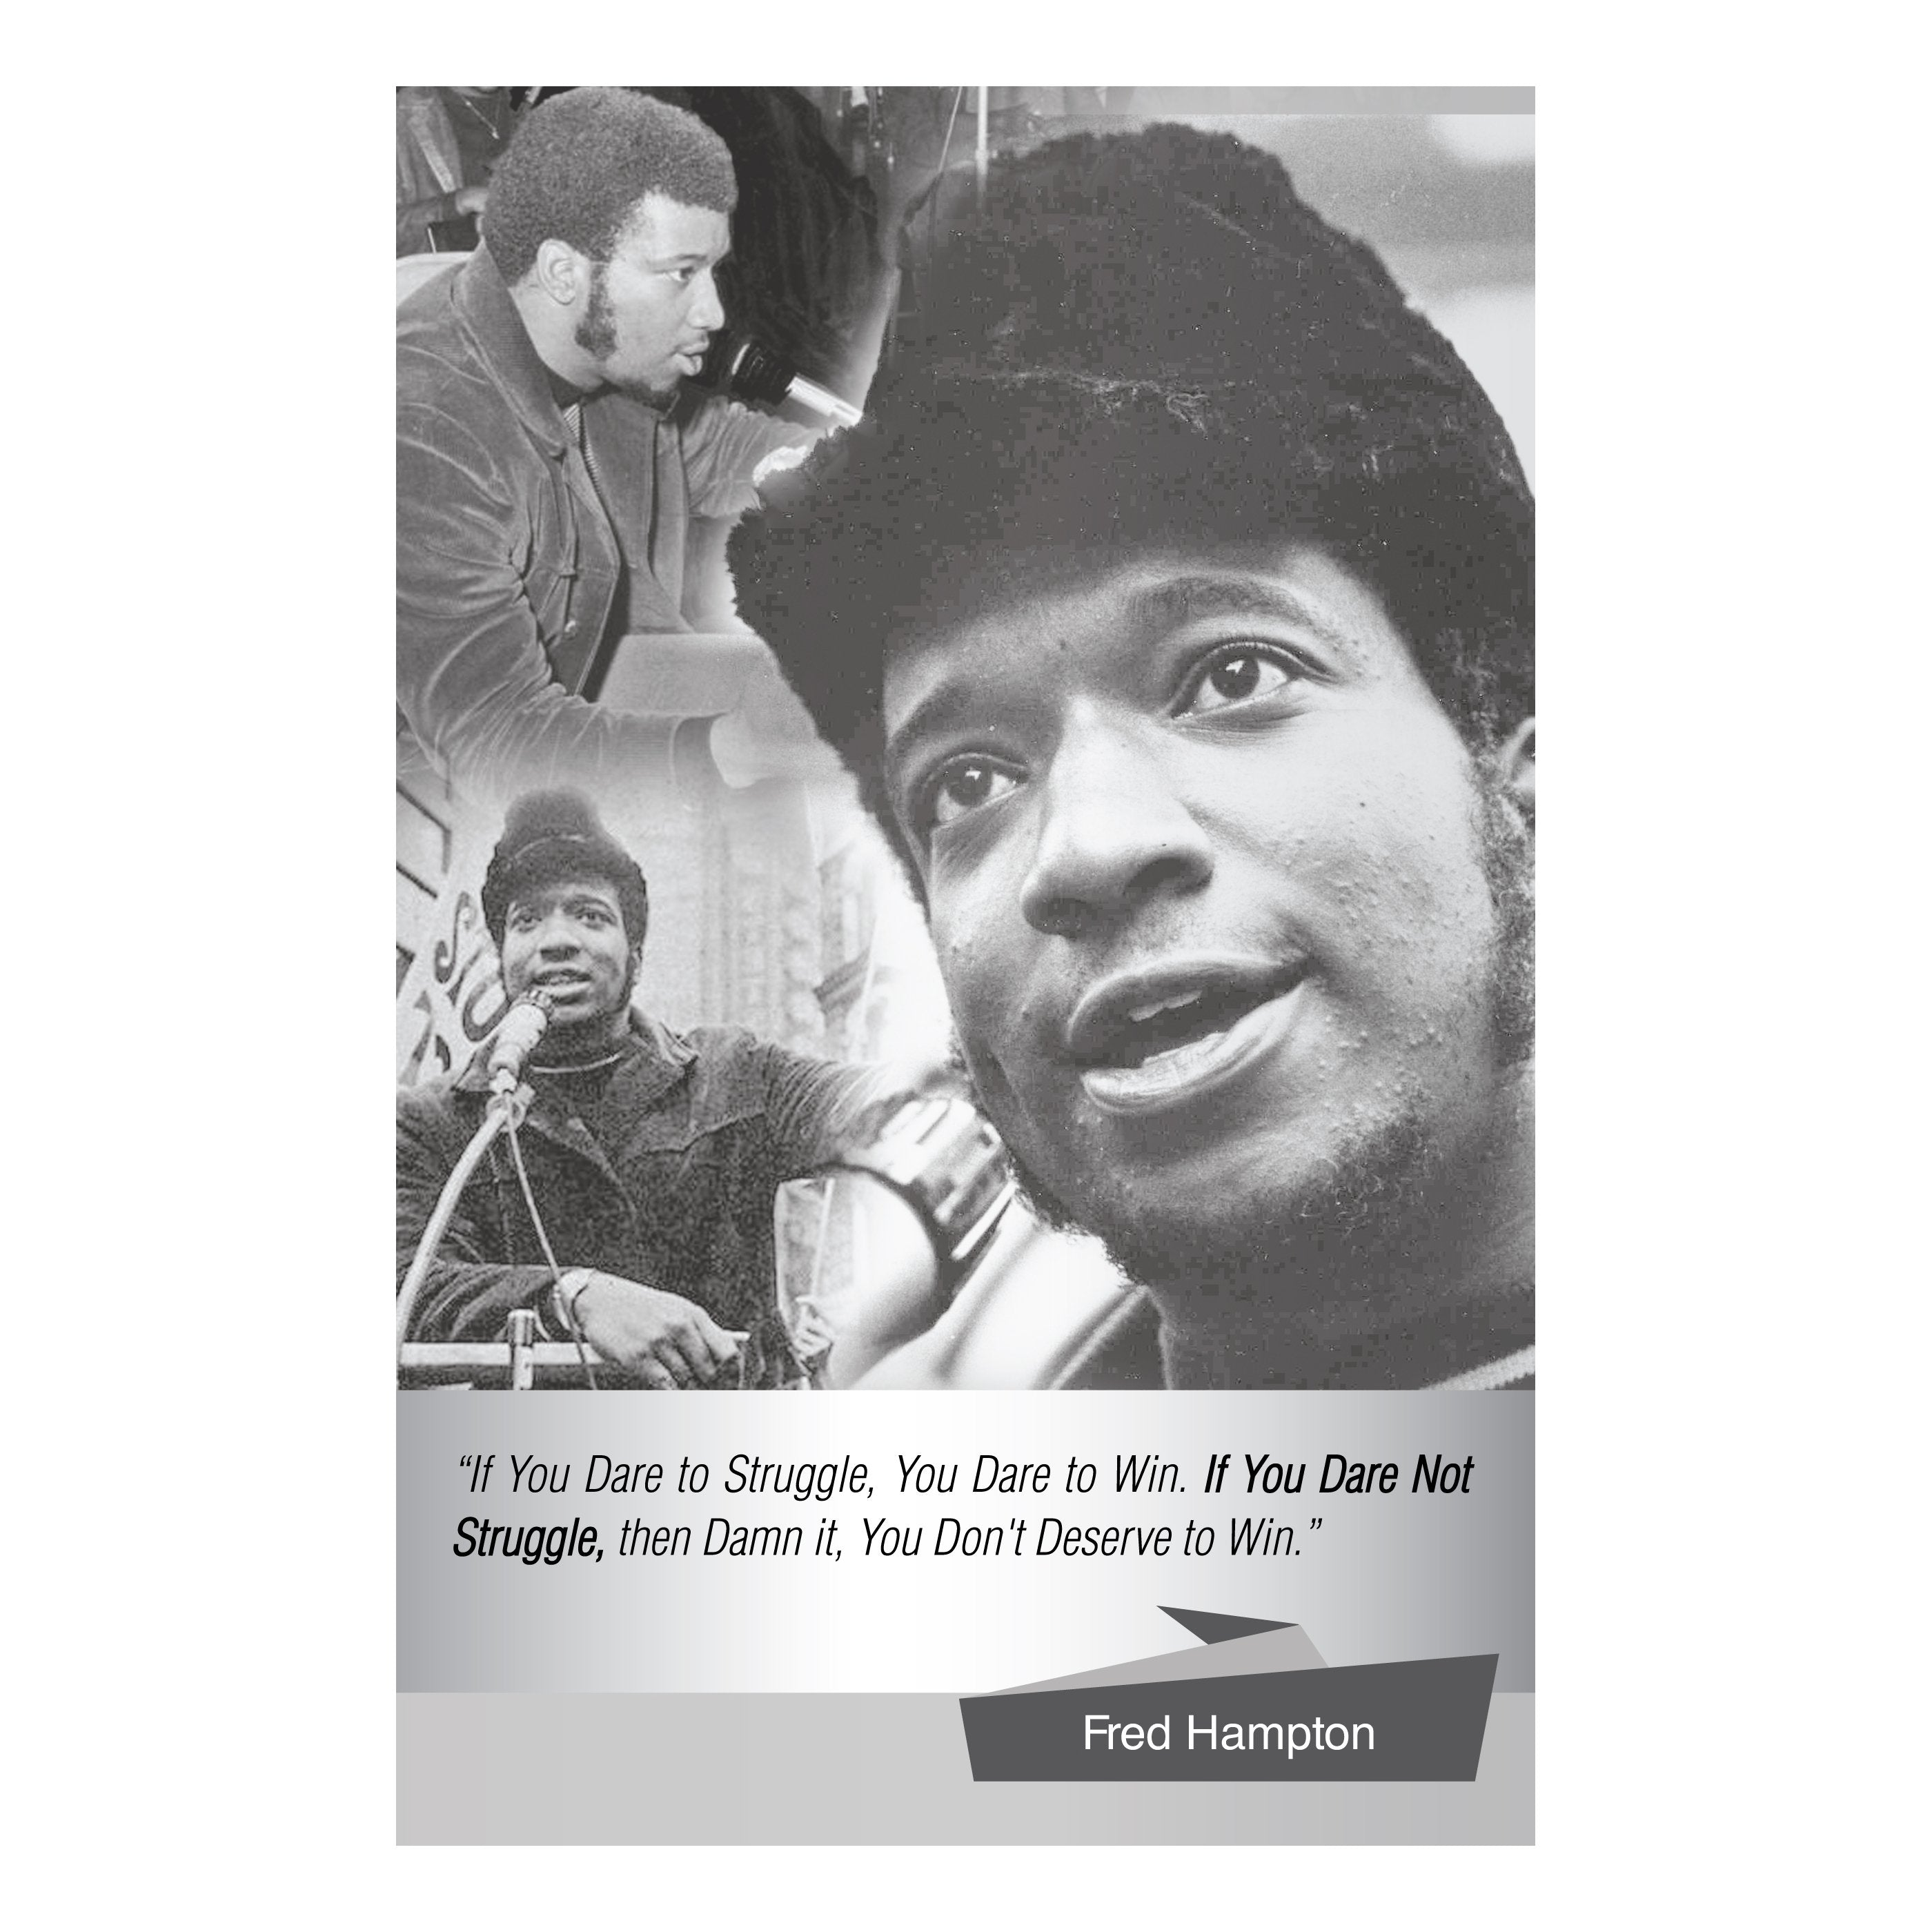 Fred Hampton: Dare to Struggle by Sankofa Designs